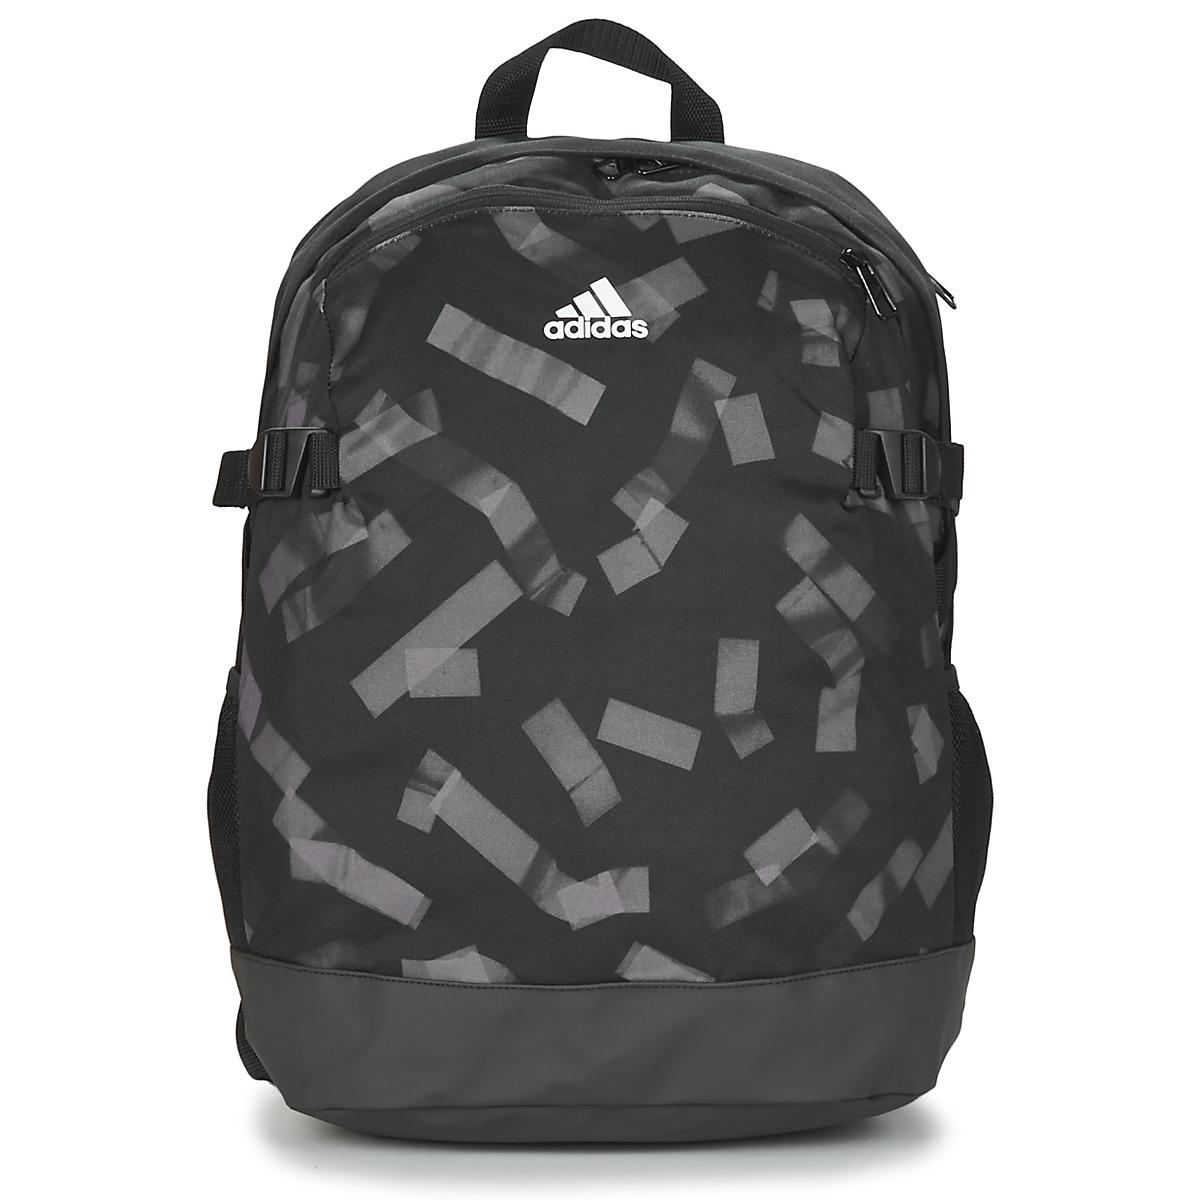 Adidas Bp Power Iv Men s Backpack In Black in Black for Men - Lyst 7a94371cc47a3